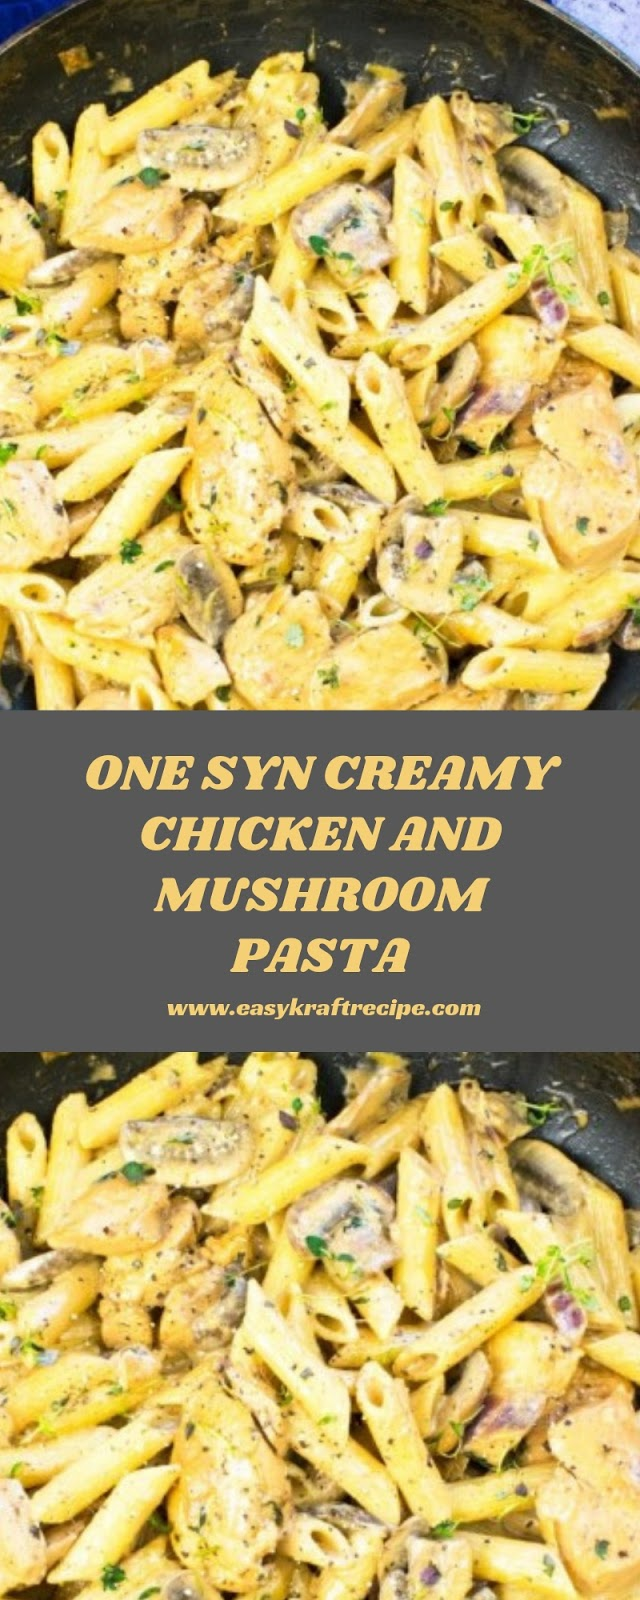 ONE SYN CREAMY CHICKEN AND MUSHROOM PASTA